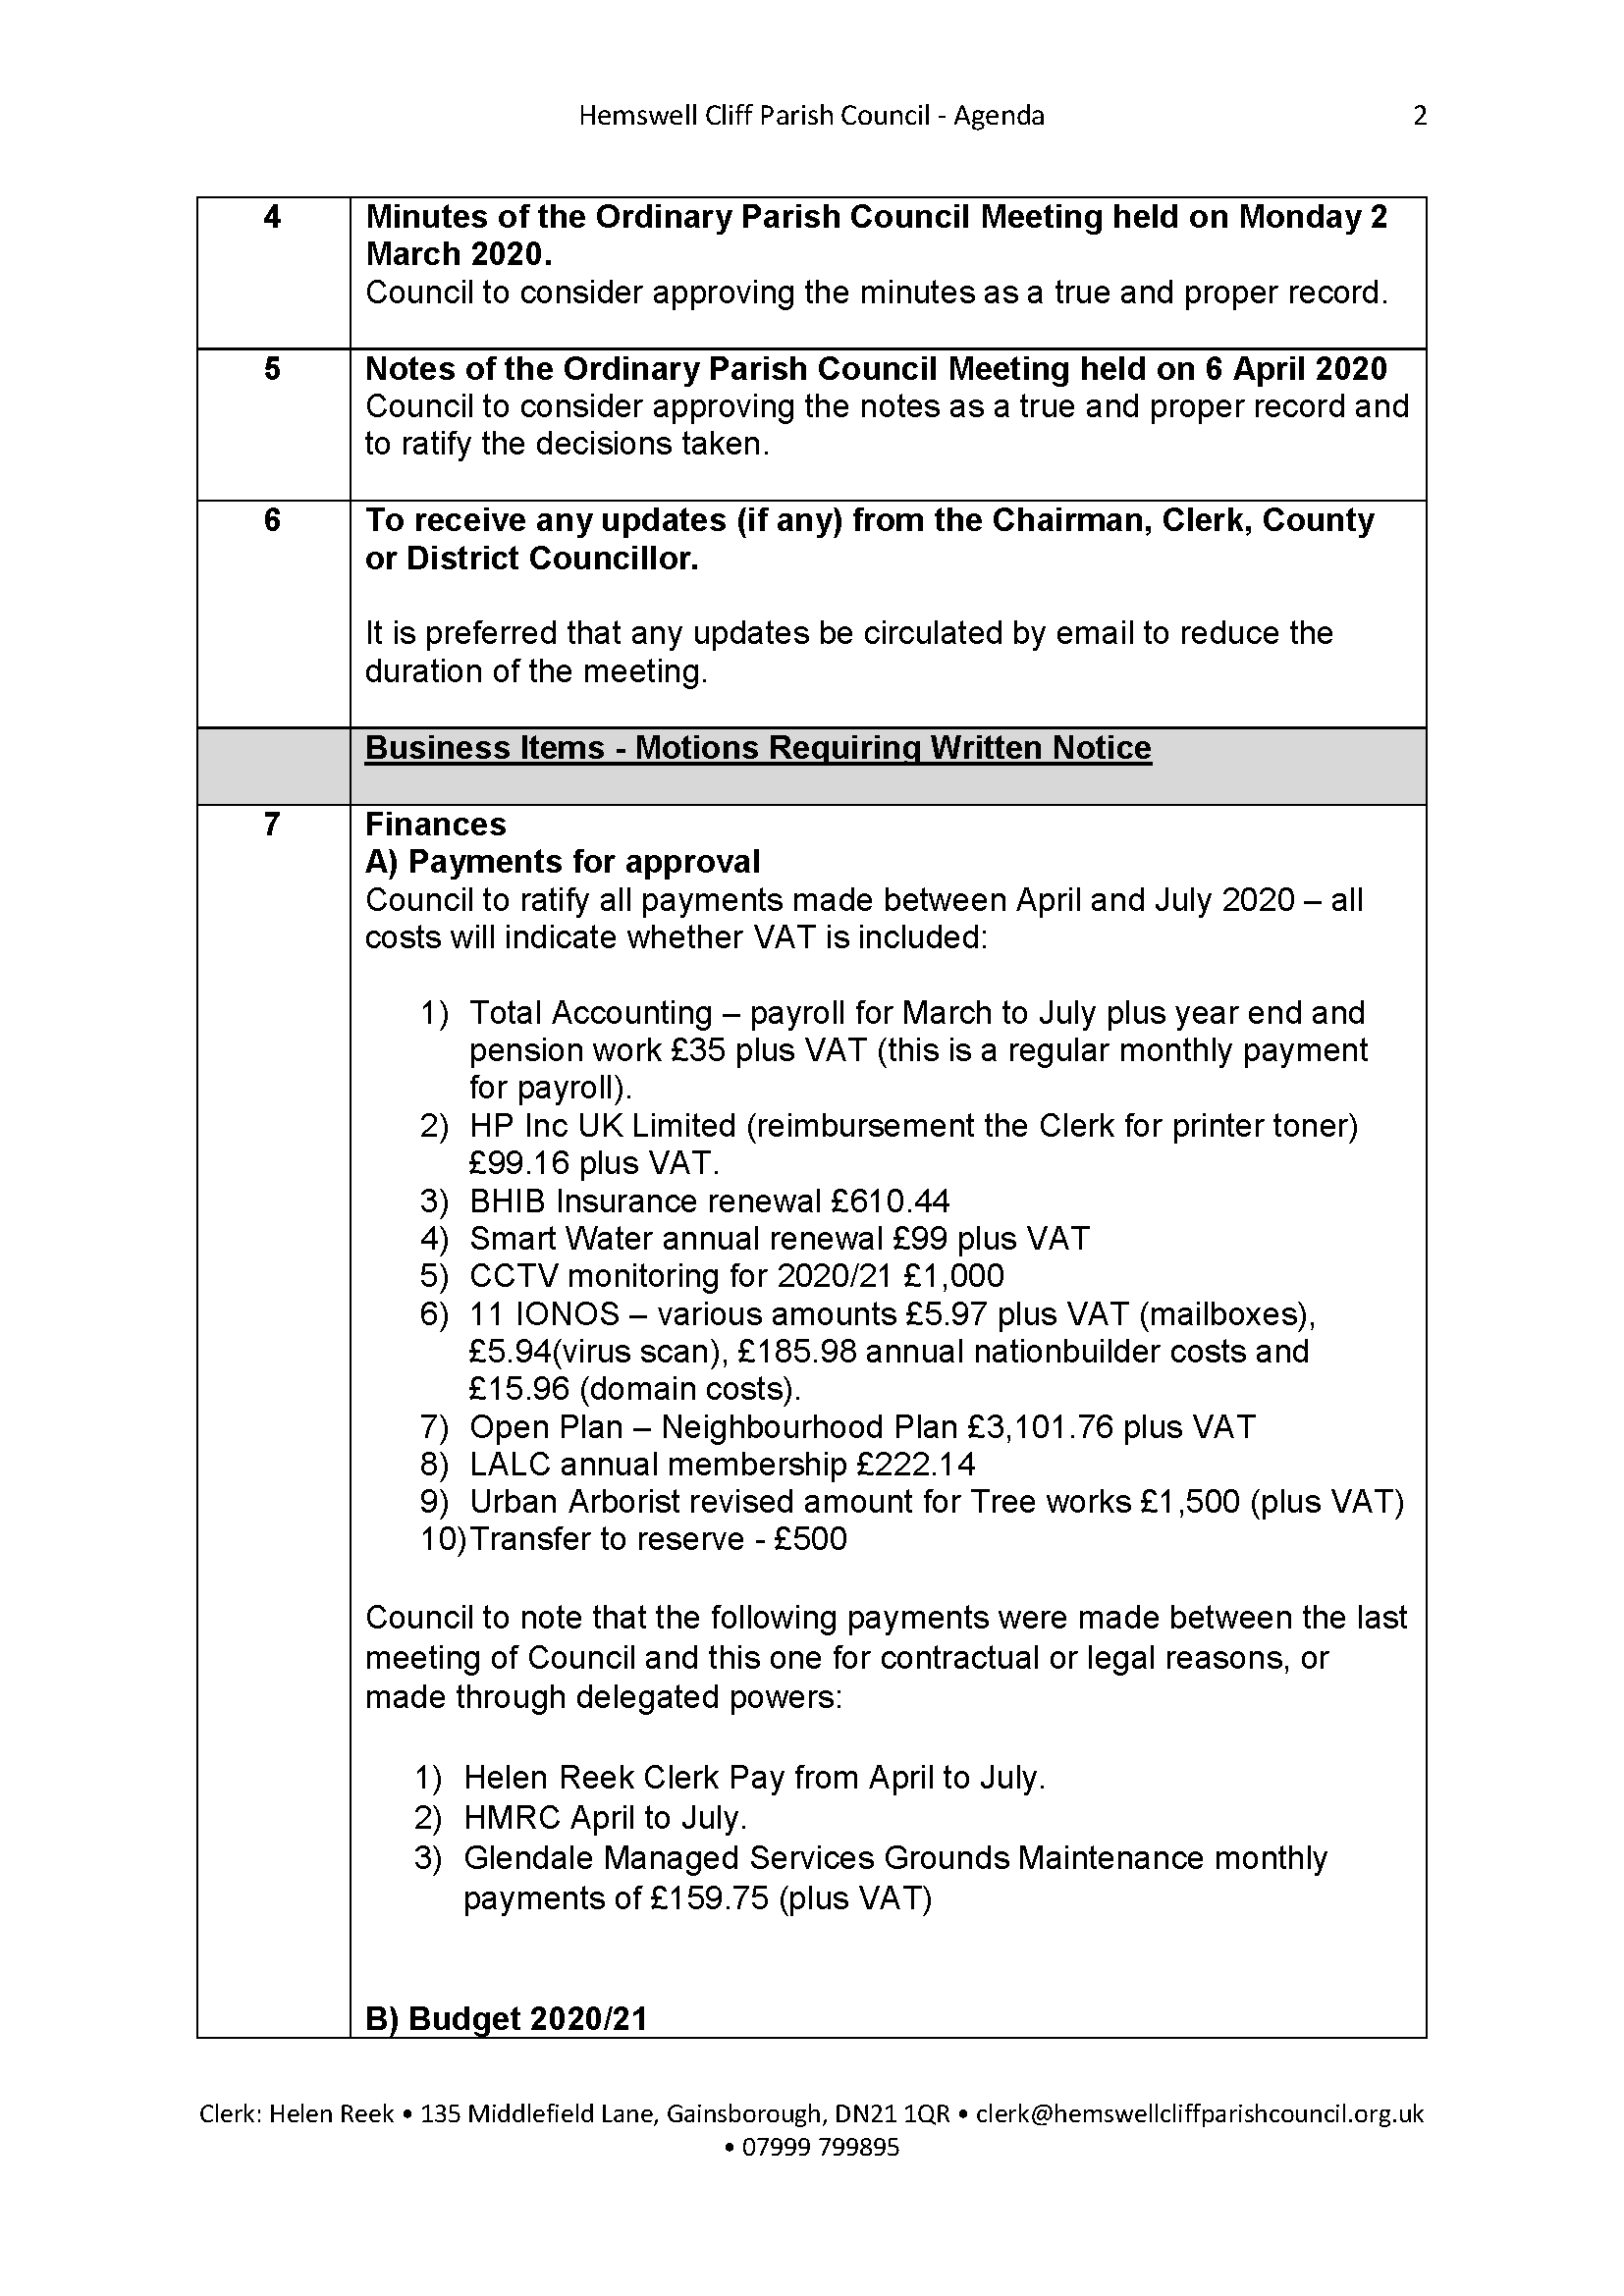 HCPC_Agenda_27.07.20_Page_2.png